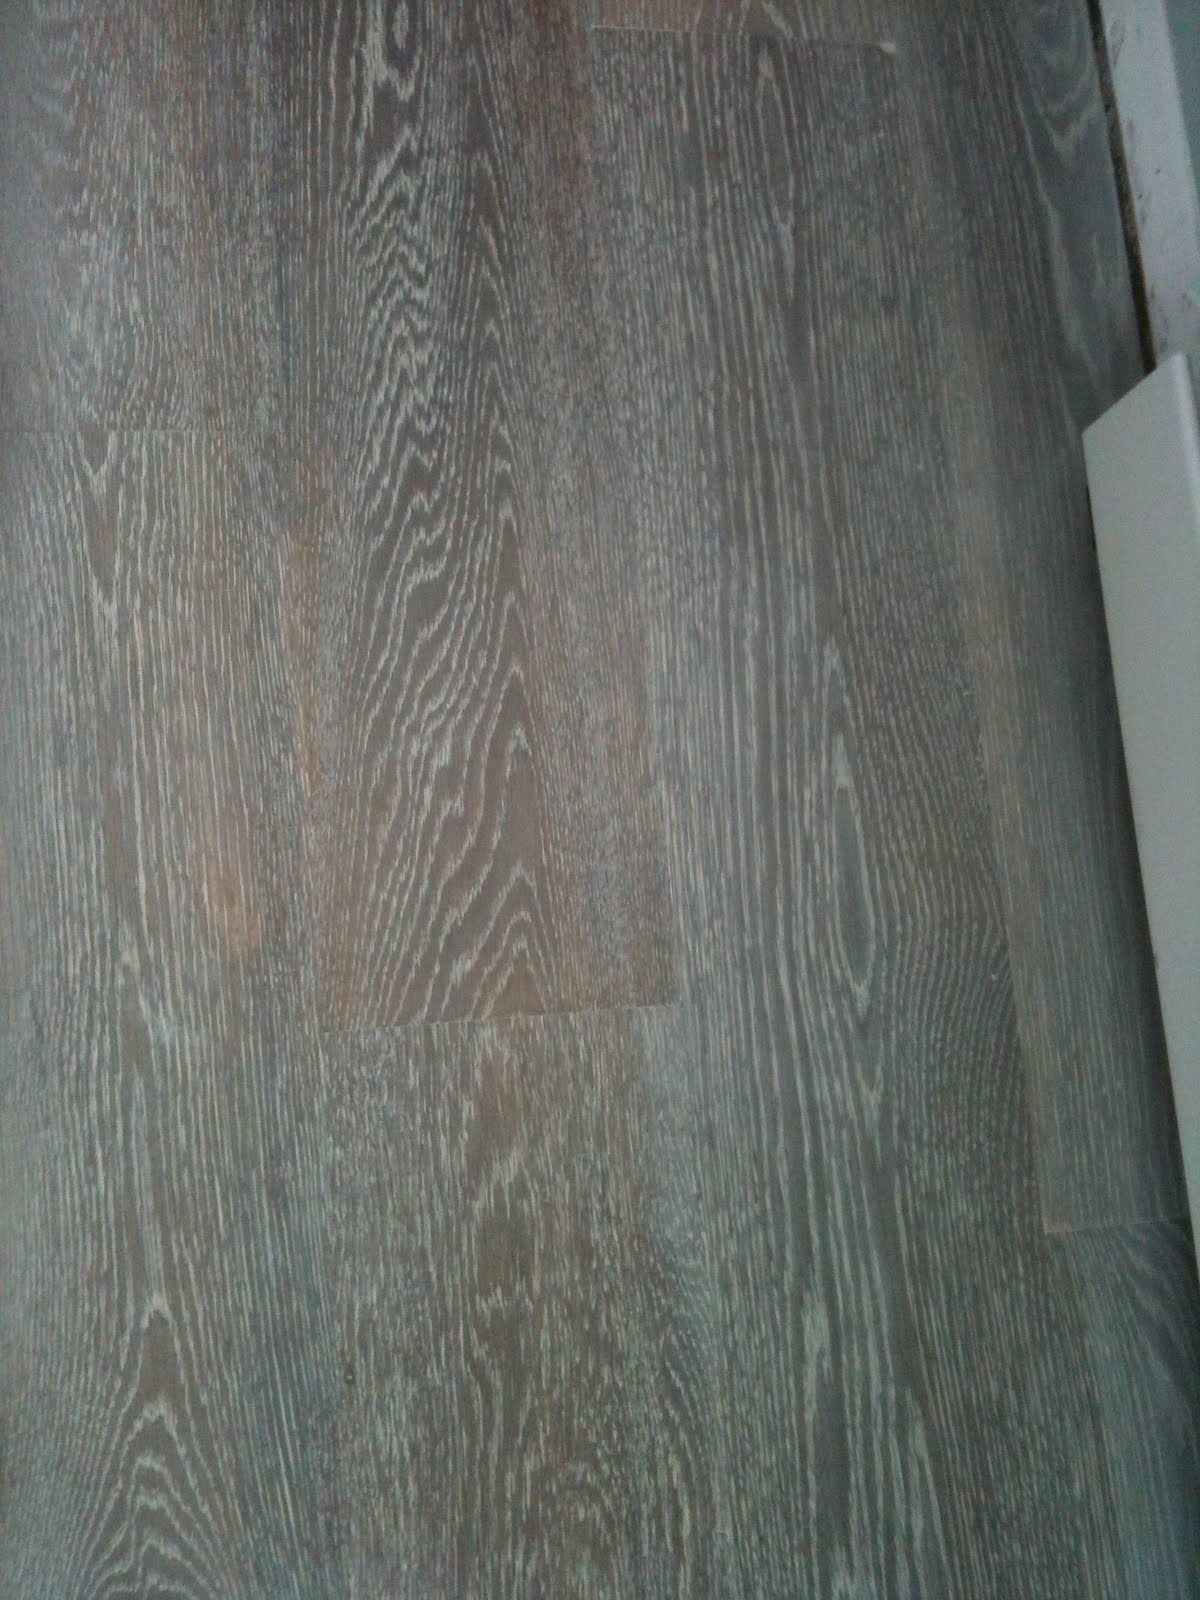 Grey Hardwood Floors Gray Flooring Youtube With